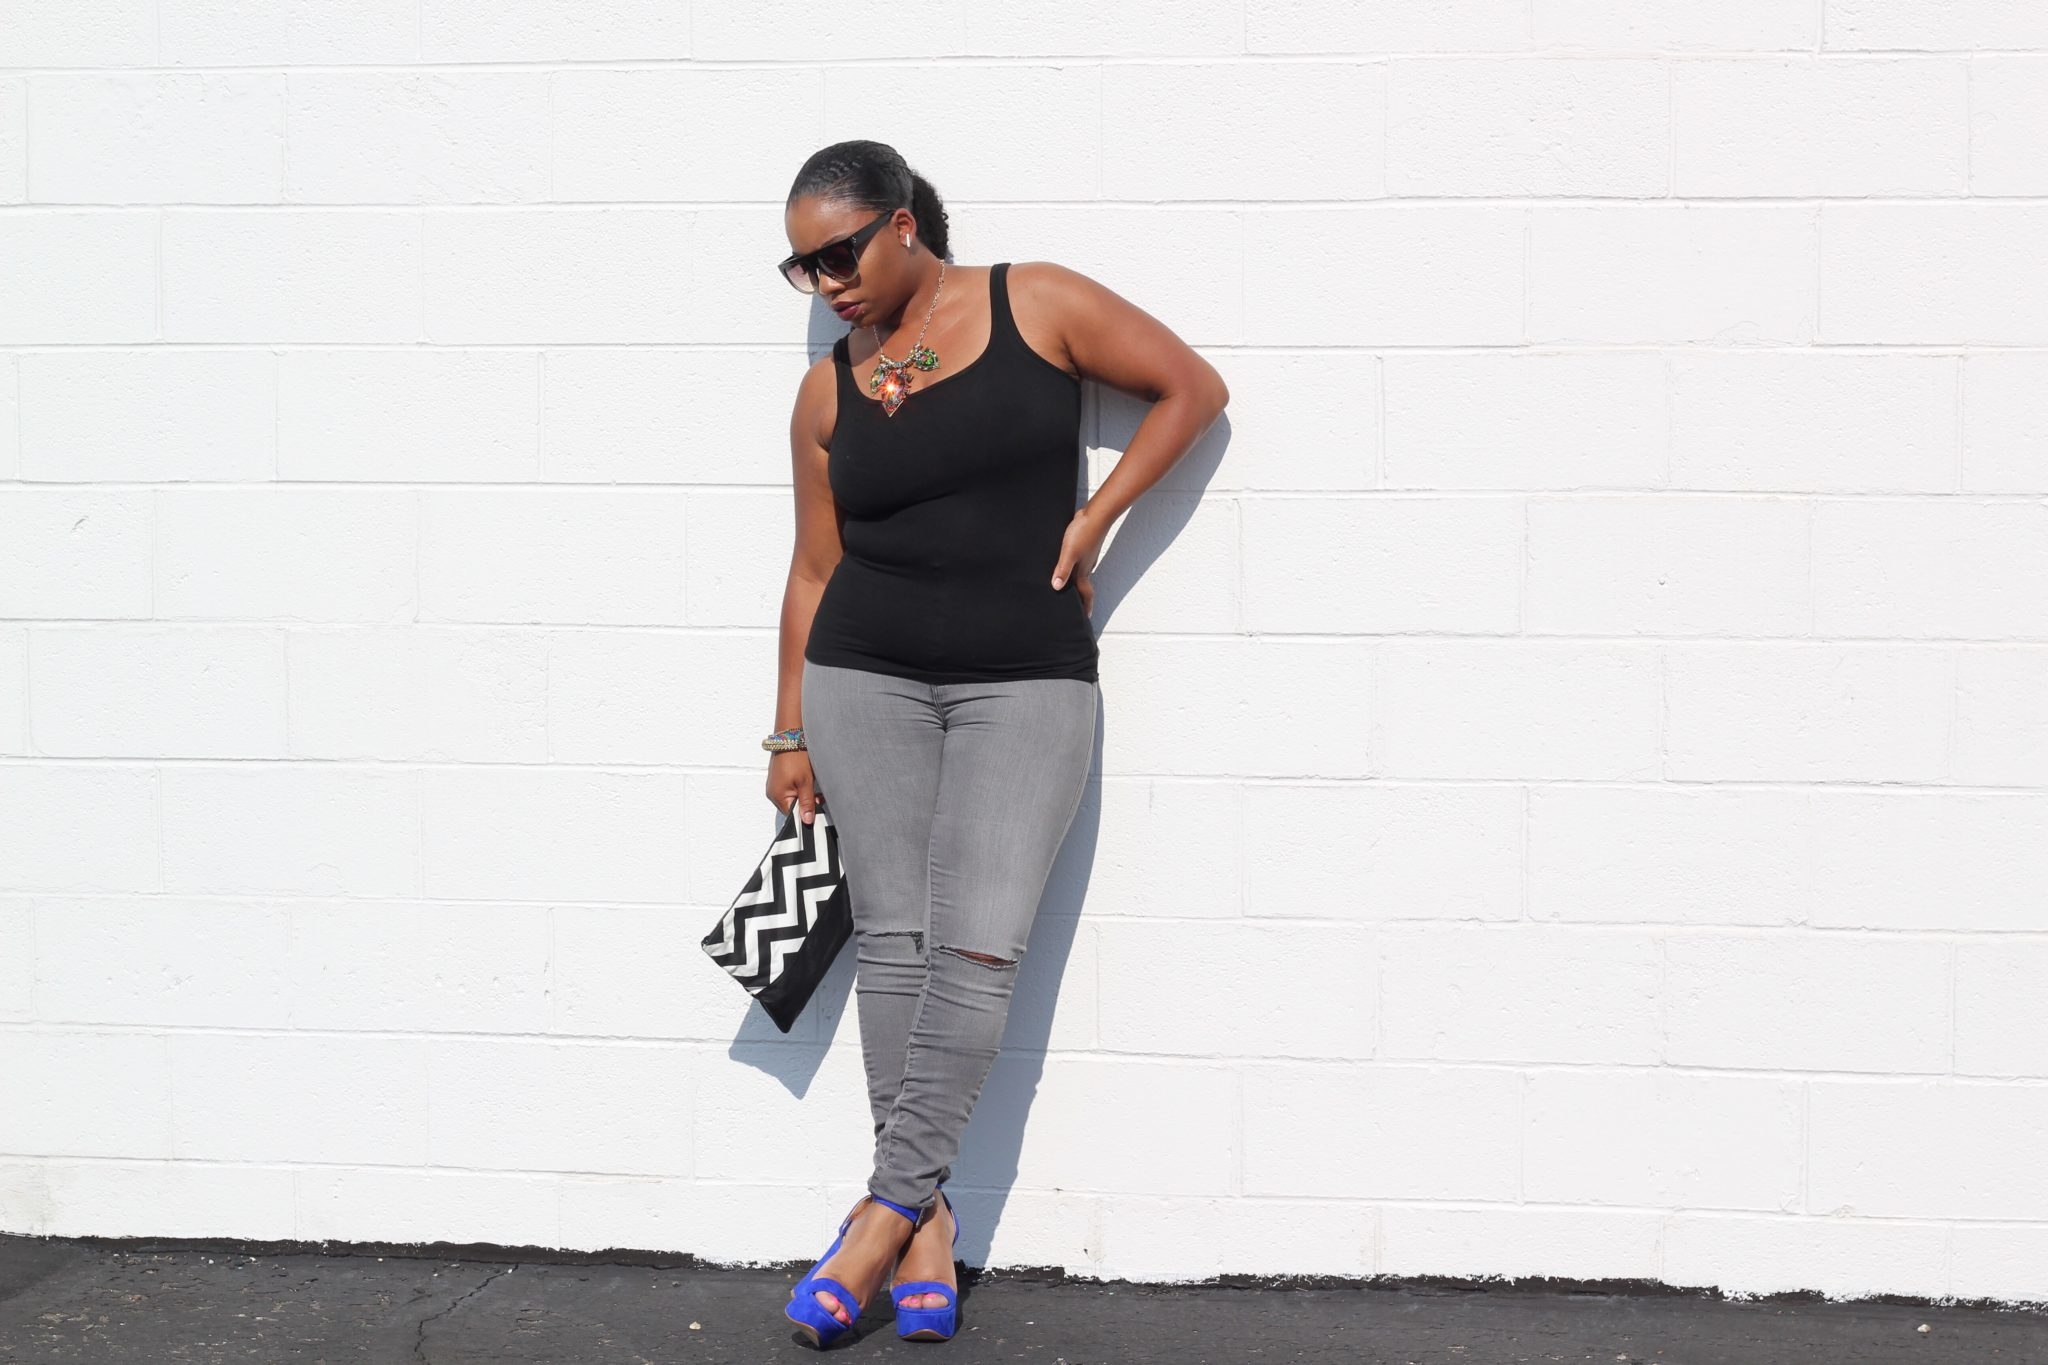 publish_snapshot-7 Pops!F21 Fashion Forever 21 how to OOTD Sassy Jones Boutique